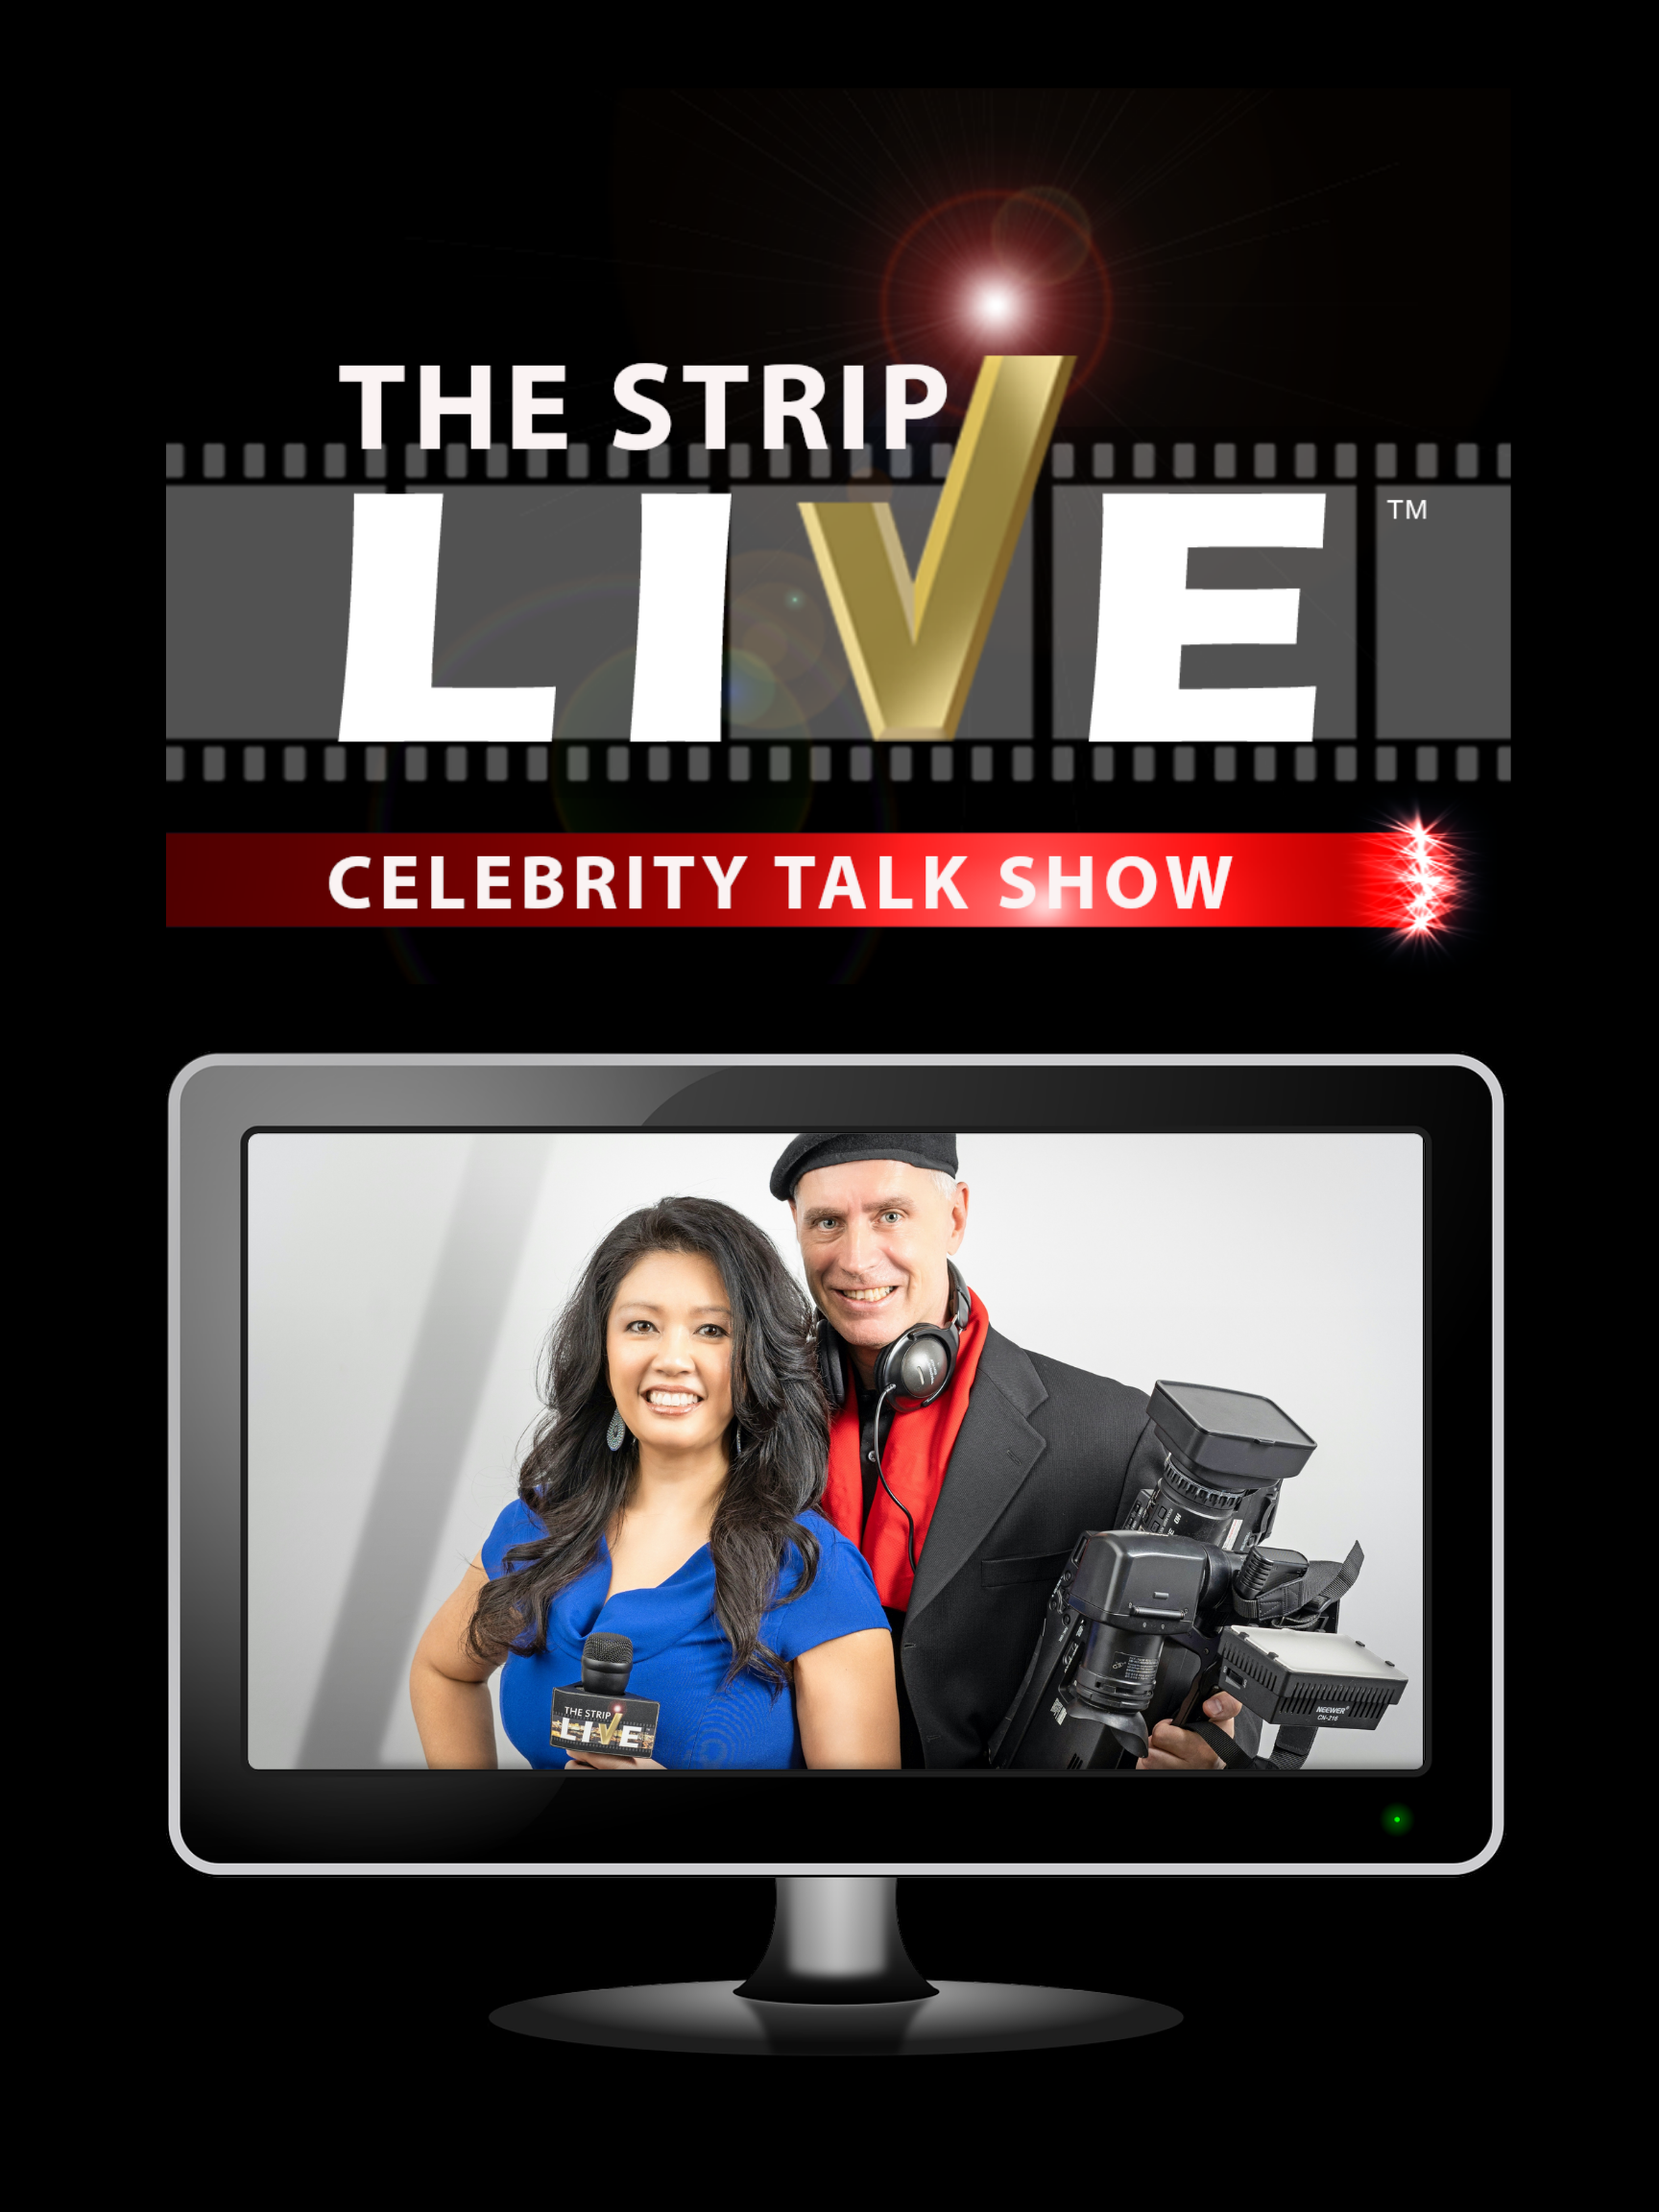 THE STRIP LIVE, Las Vegas Based Talk Show Series, Back in Production After Pandemic Pause